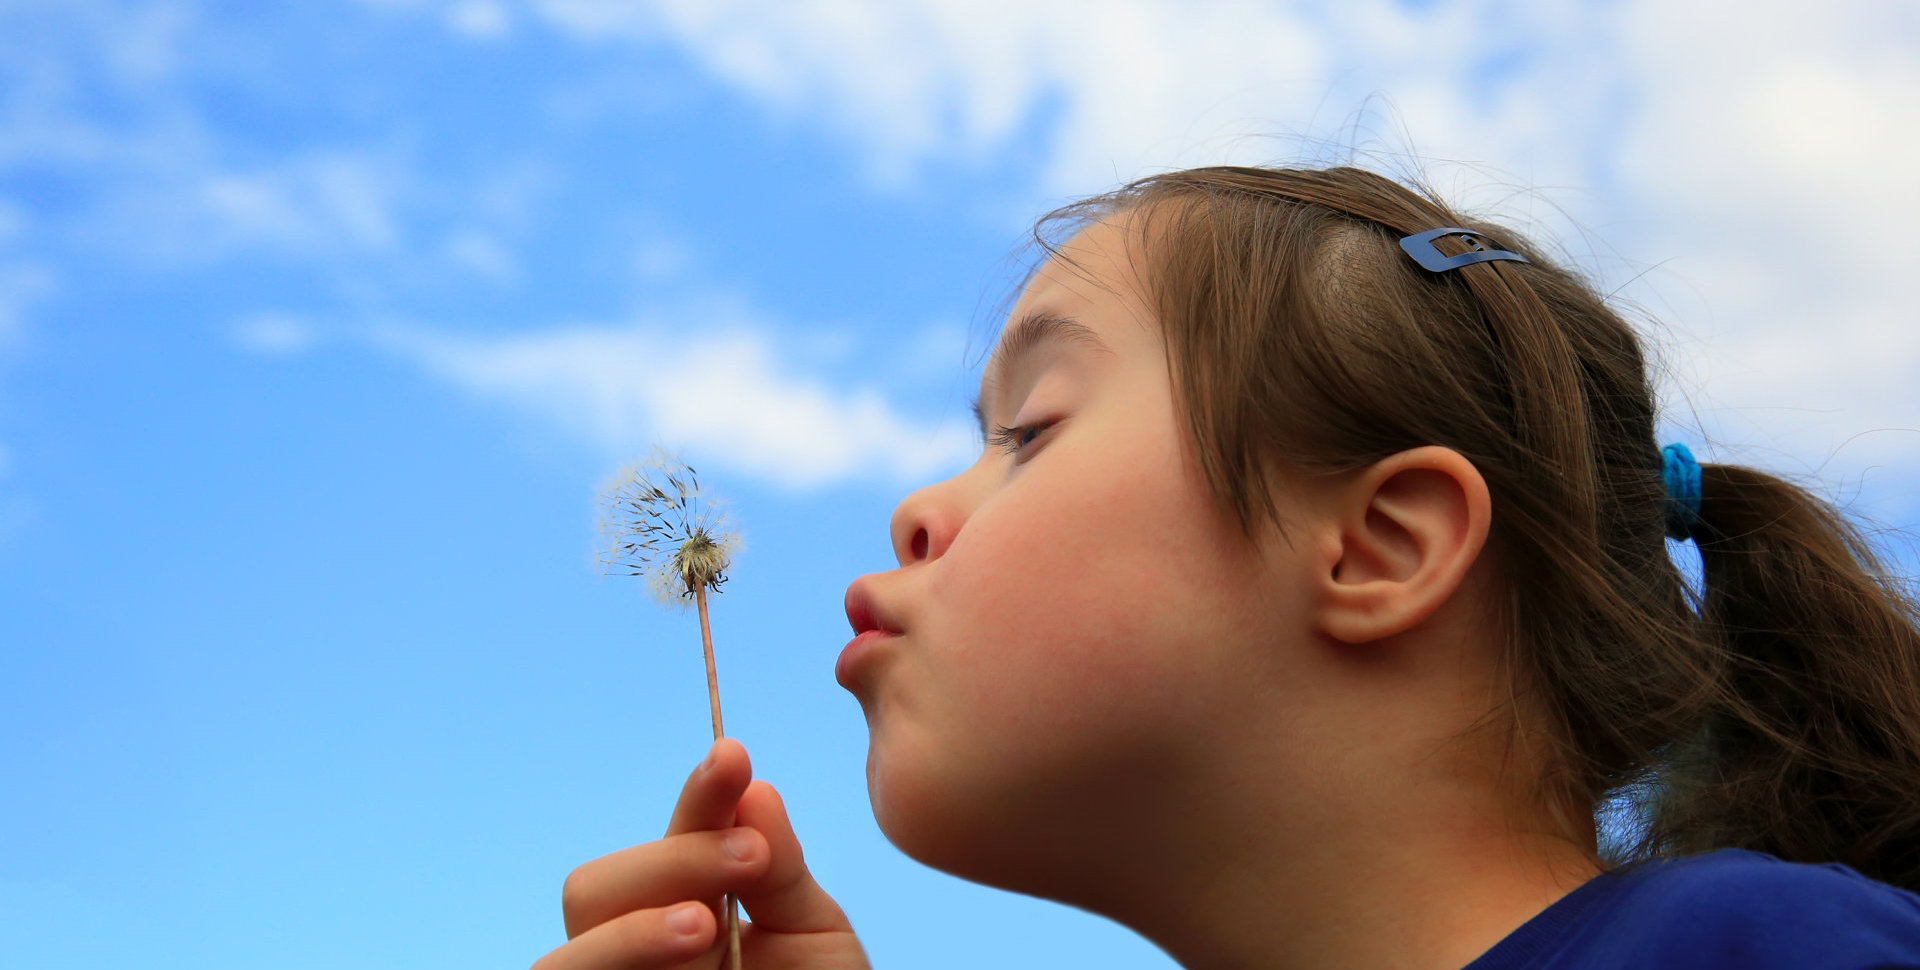 a kid blowing flower